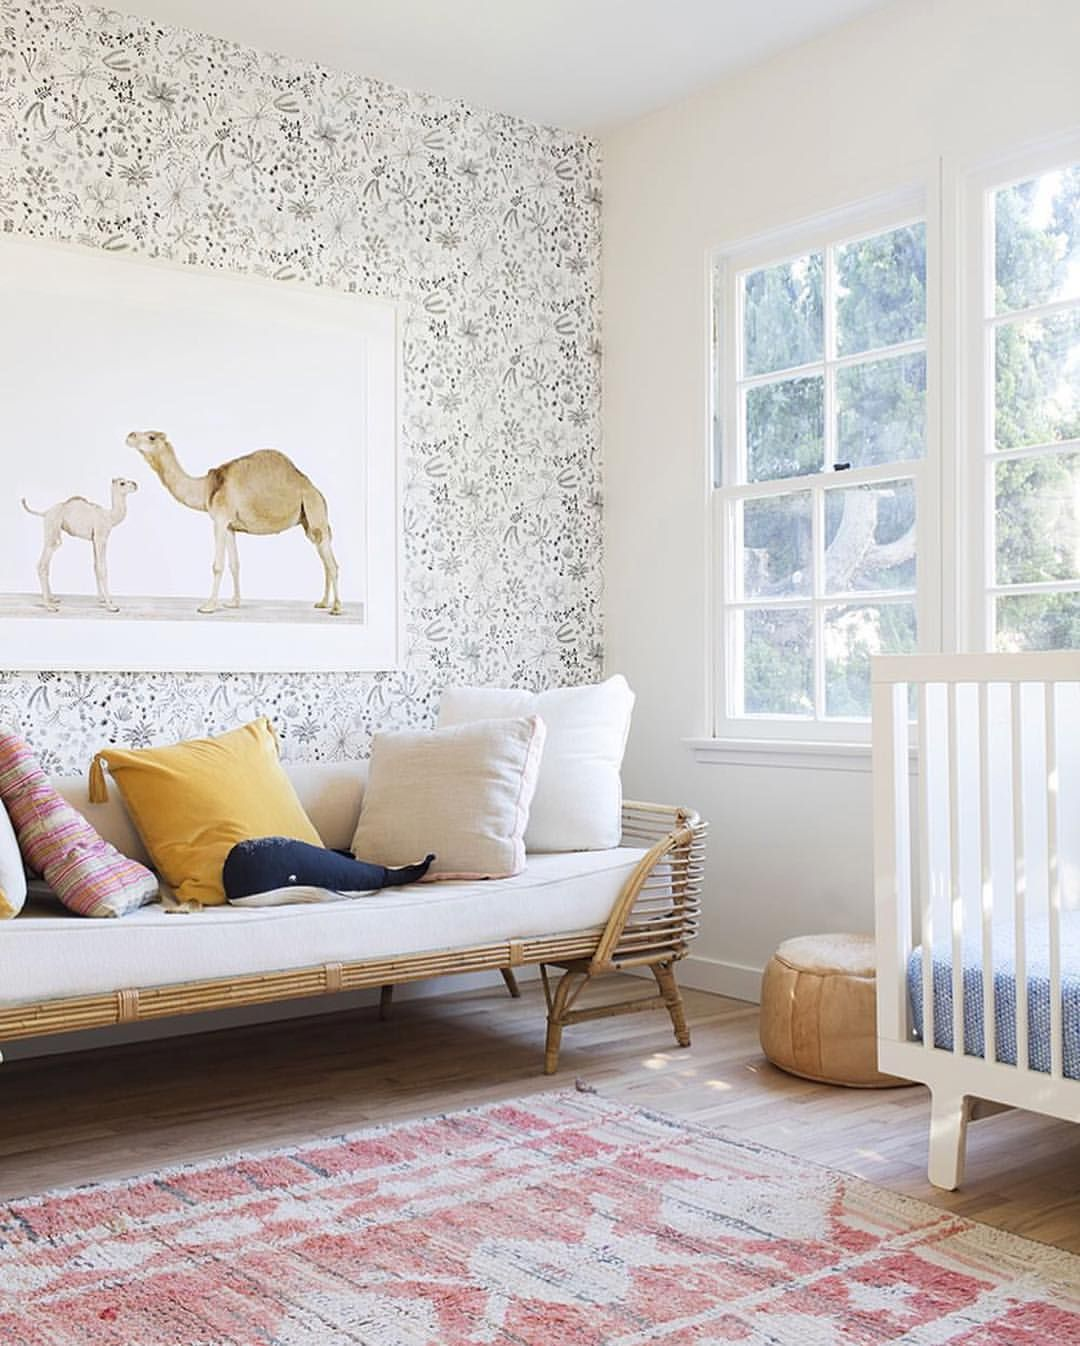 Pin by Savannah Parker on Awesome Spaces | Pinterest | Wallpaper ...